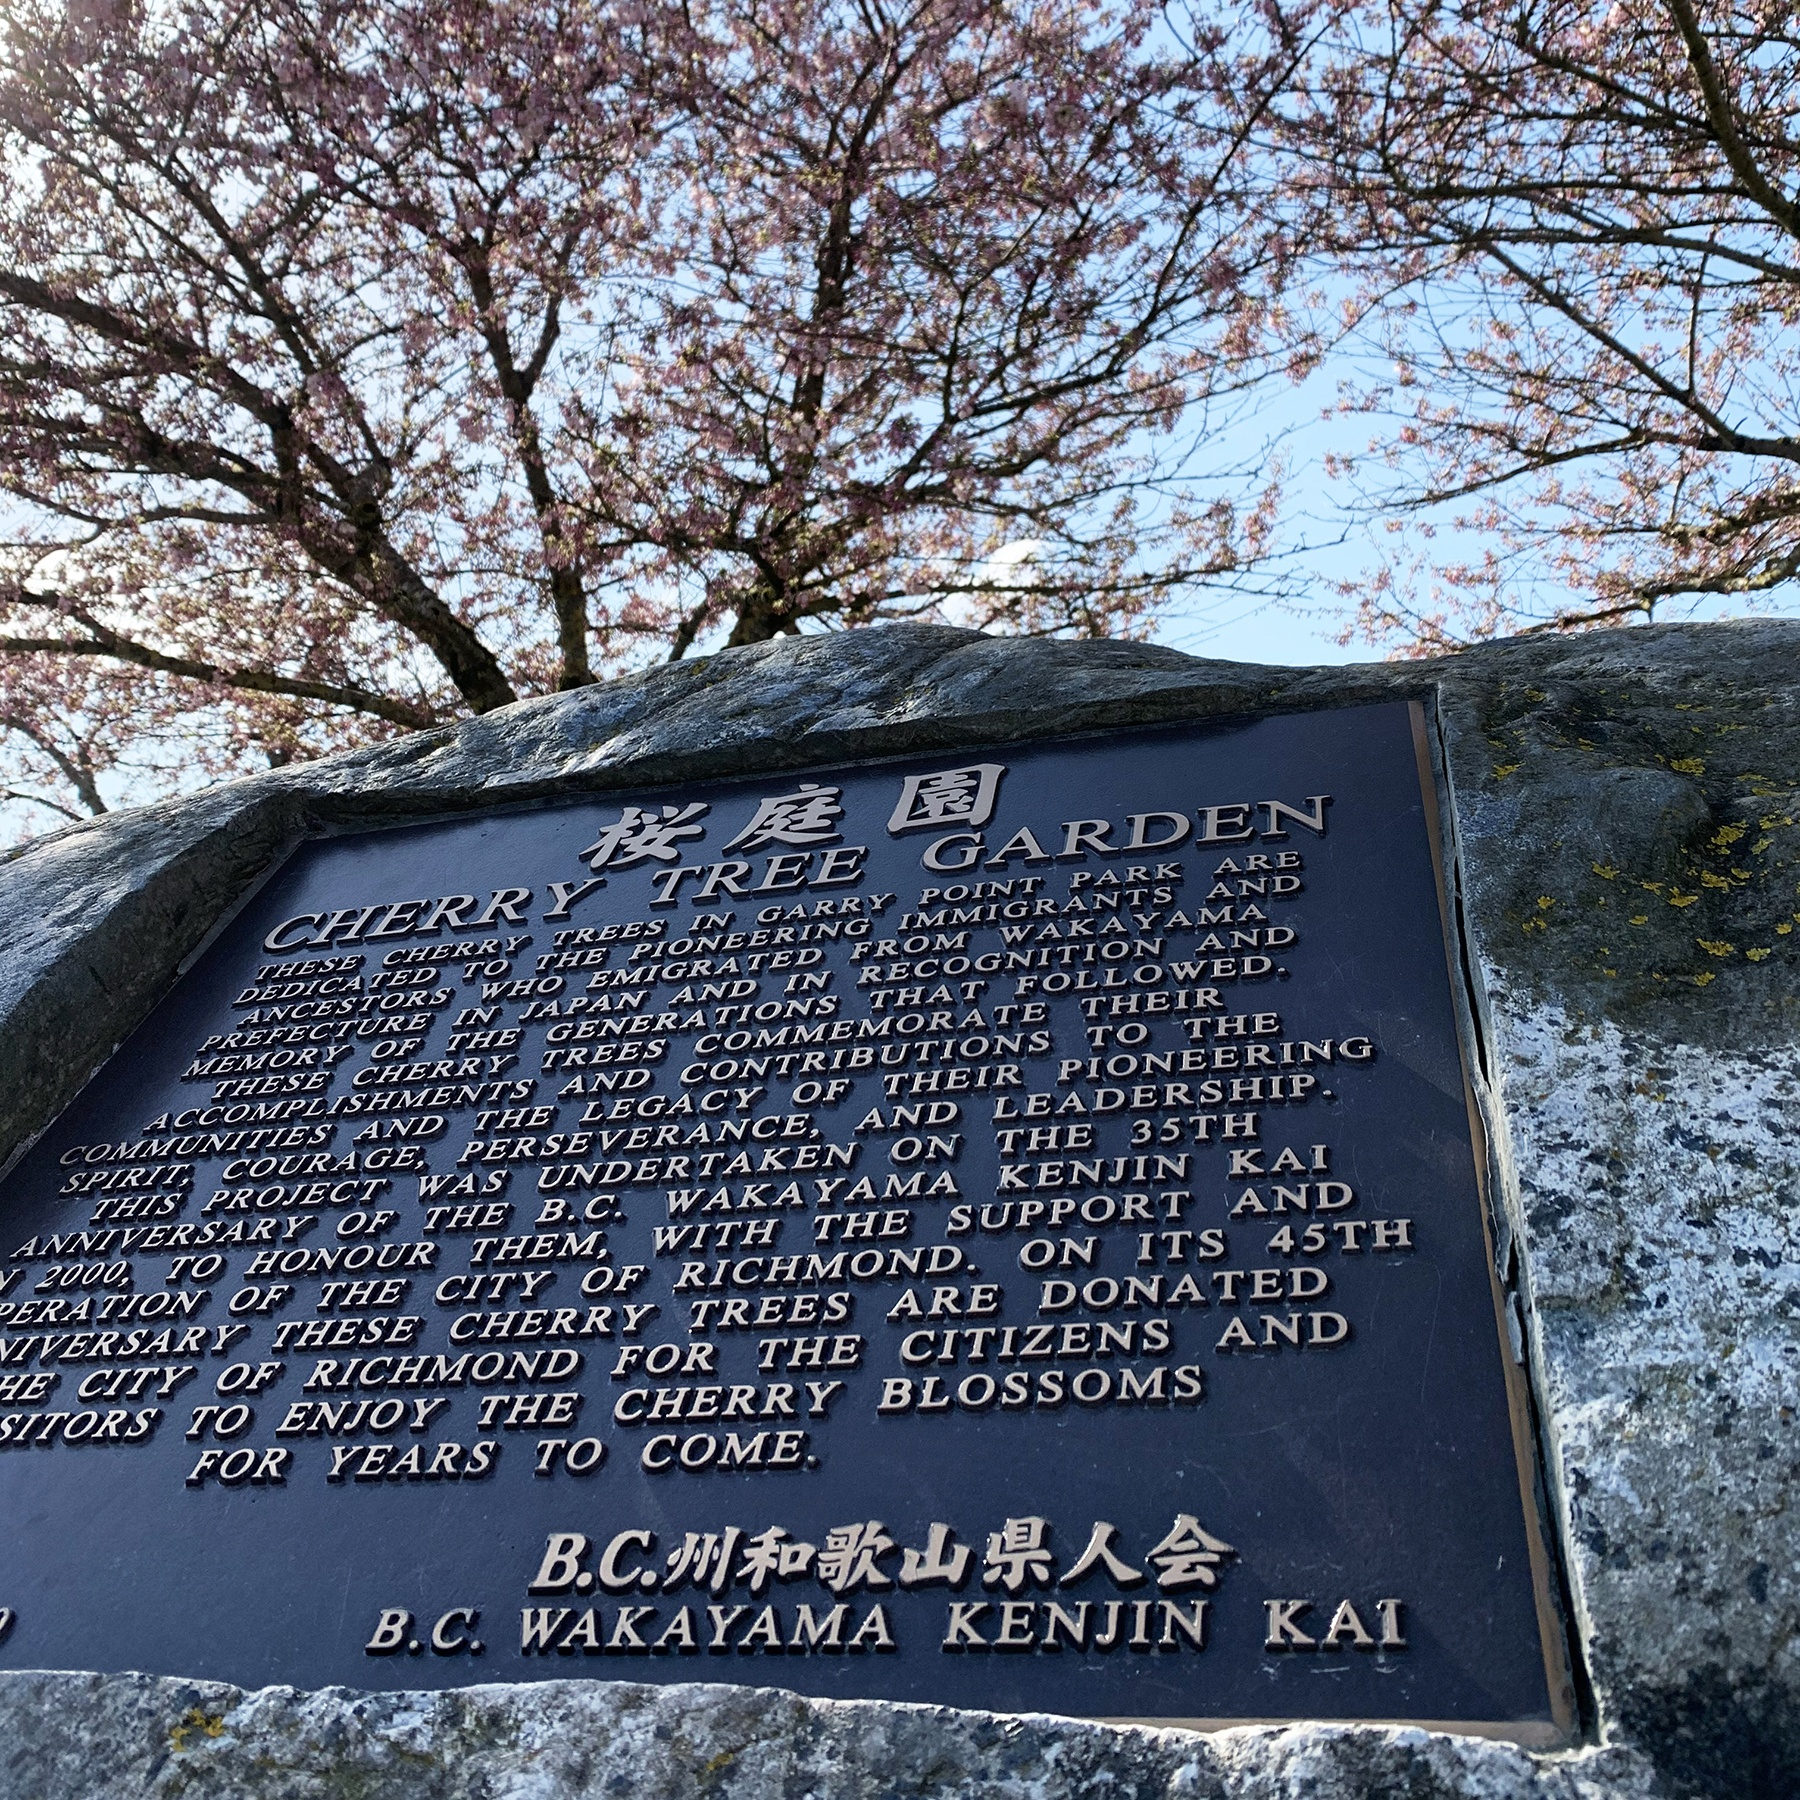 Photo of plaque about the Cherry Tree Garden from the BC Wakayama Kenjin Kai. In the background, a canopy of blossoming cherry trees can be seen.